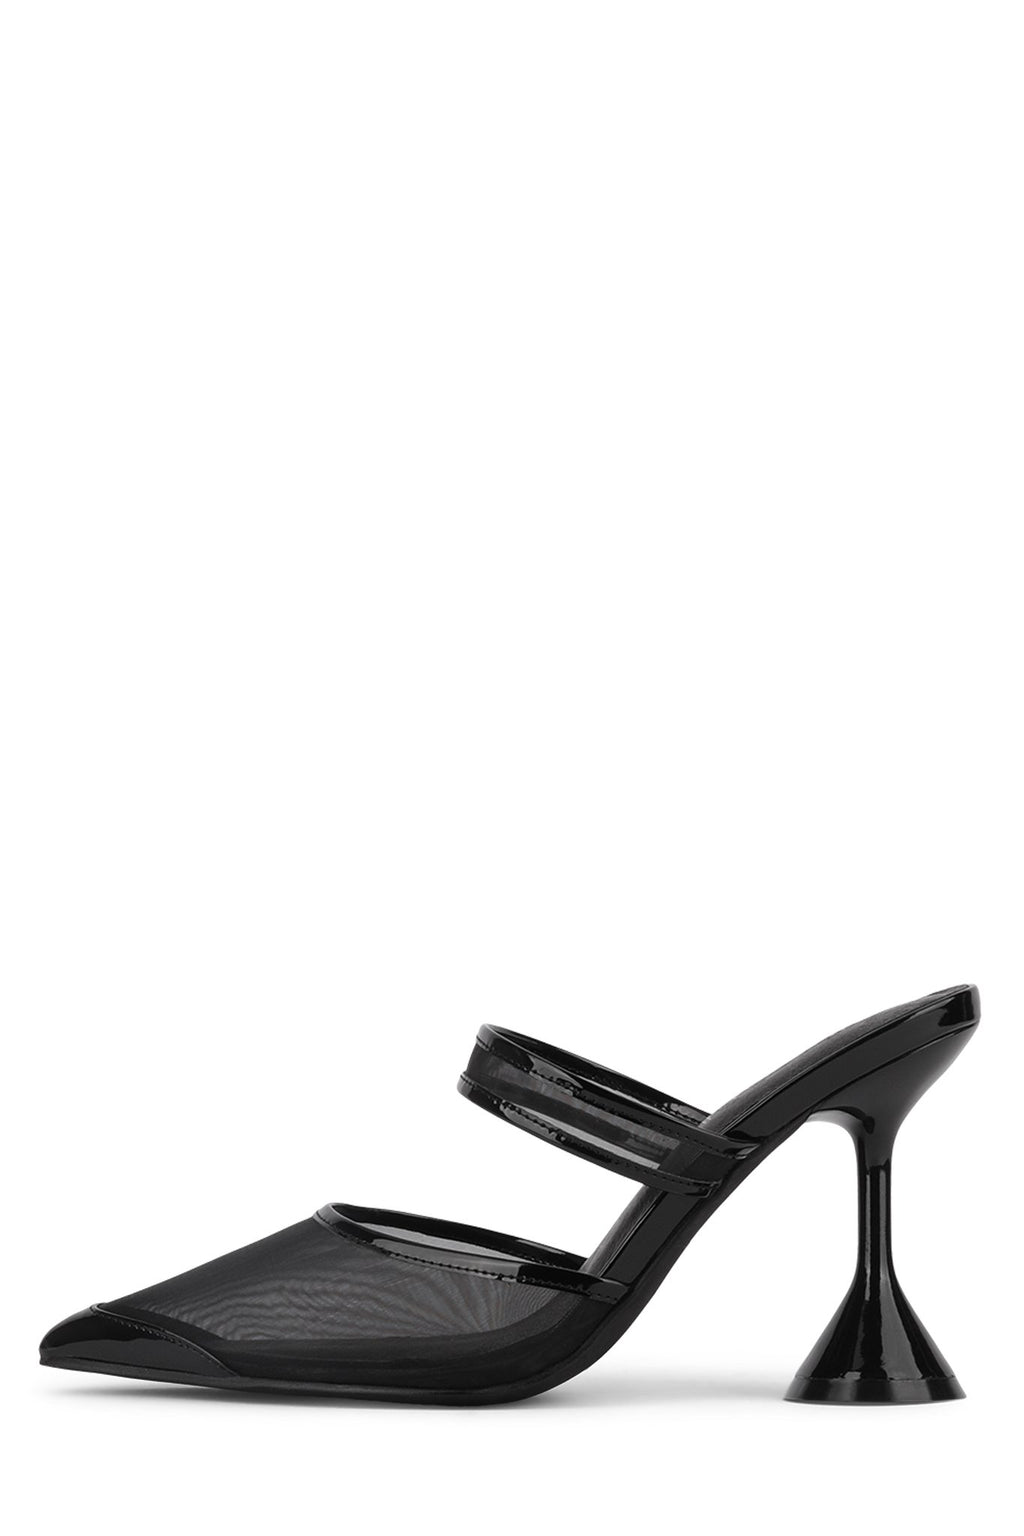 ZIVOT-2MS Heeled Mule STRATEGY Black Mesh 6